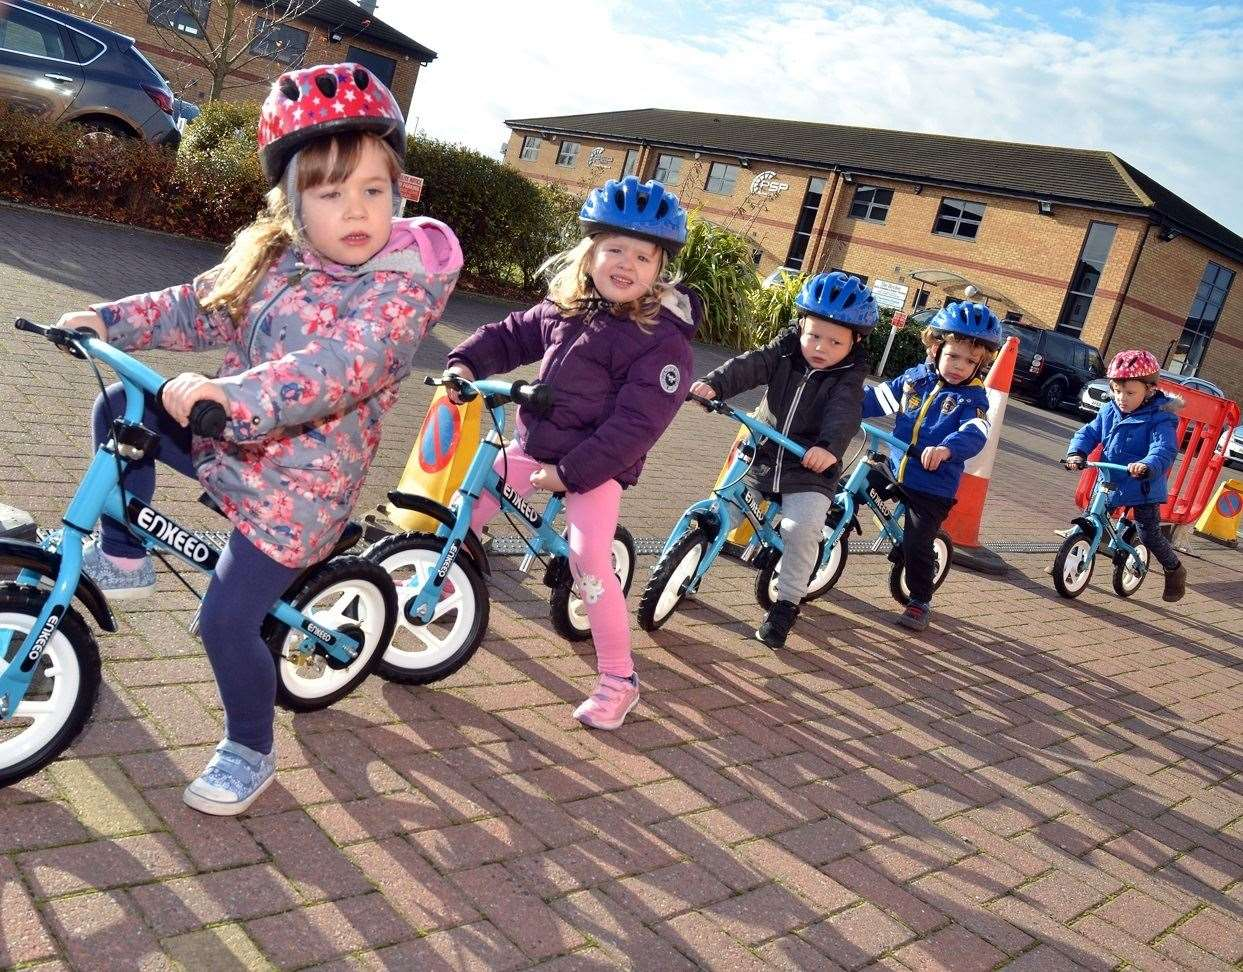 Children at Sunflower Lodge Childcare in Pinchbeck will help raise money for Nicole by completing sponsored laps around a coned off area of the car park on balance bikes. (5449448)